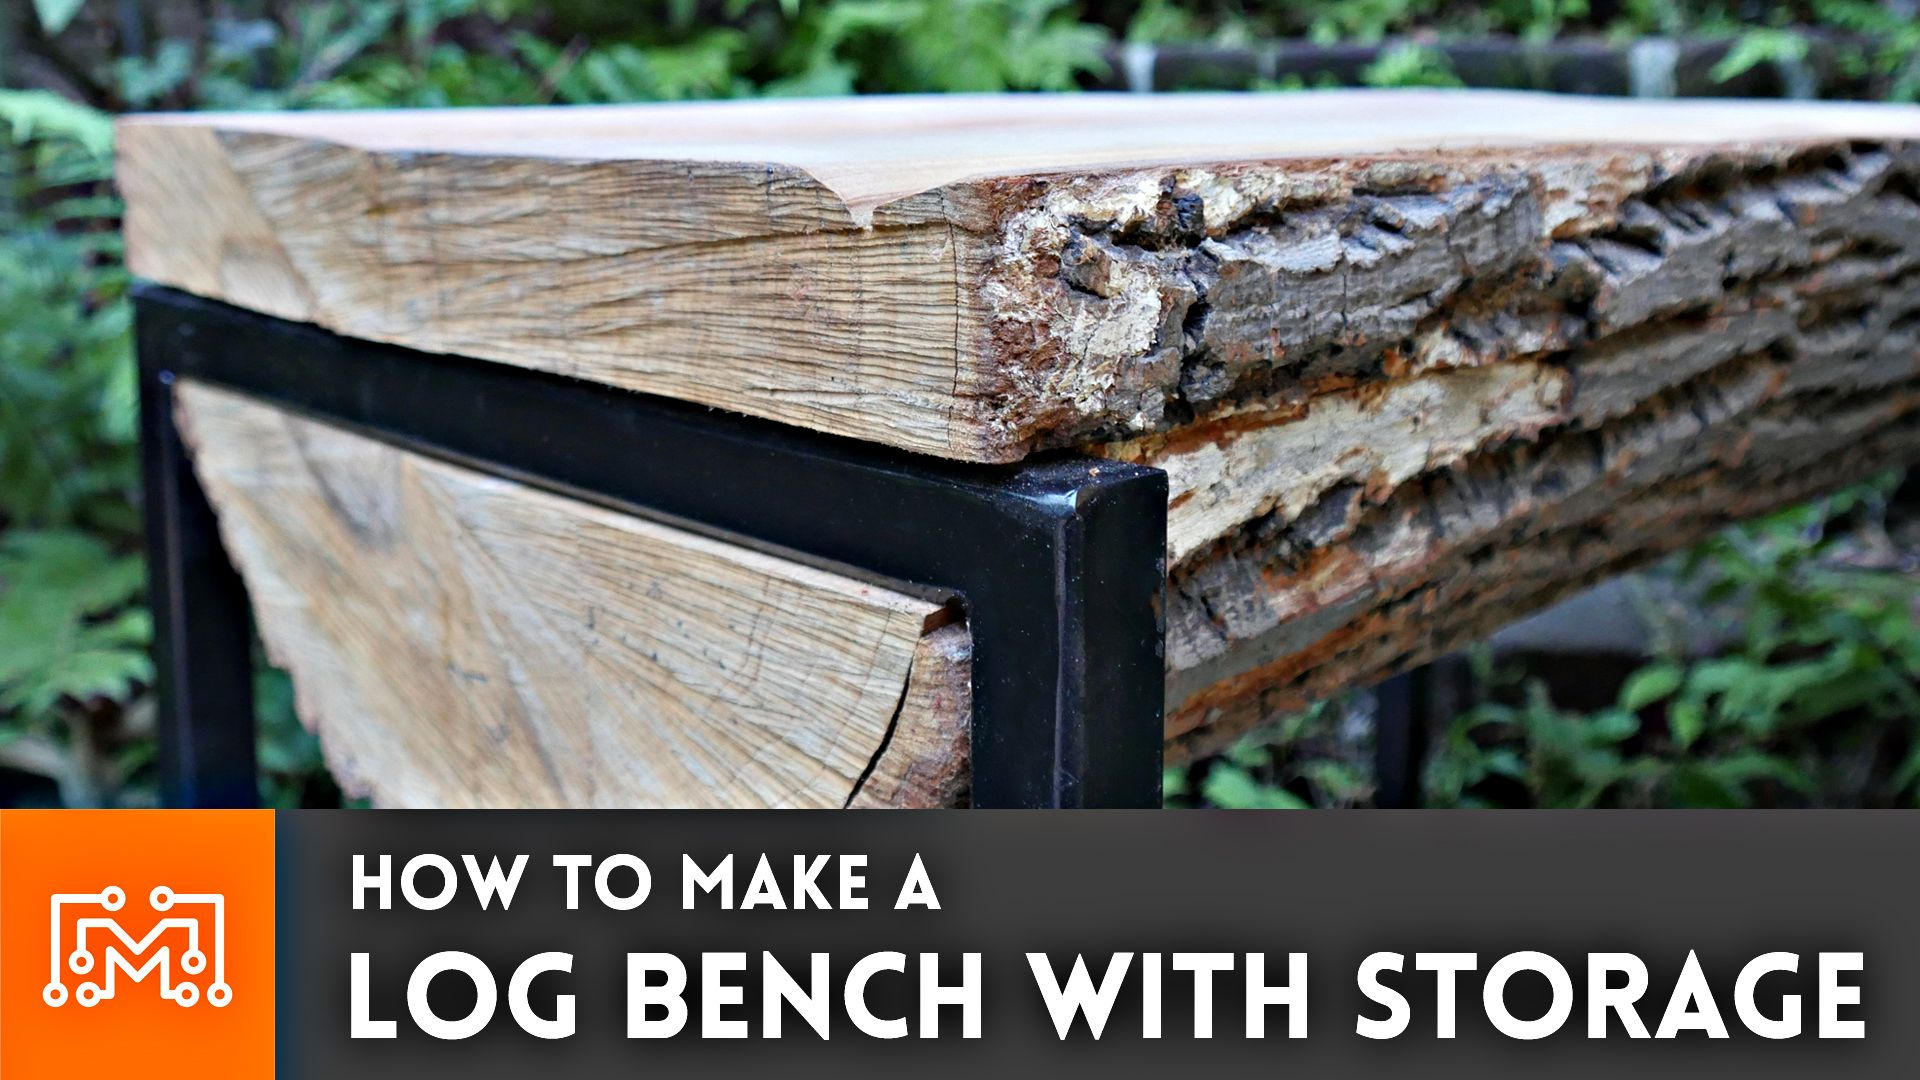 Phenomenal Check Out How I Turned This Log Into A Bench With Hidden Beatyapartments Chair Design Images Beatyapartmentscom